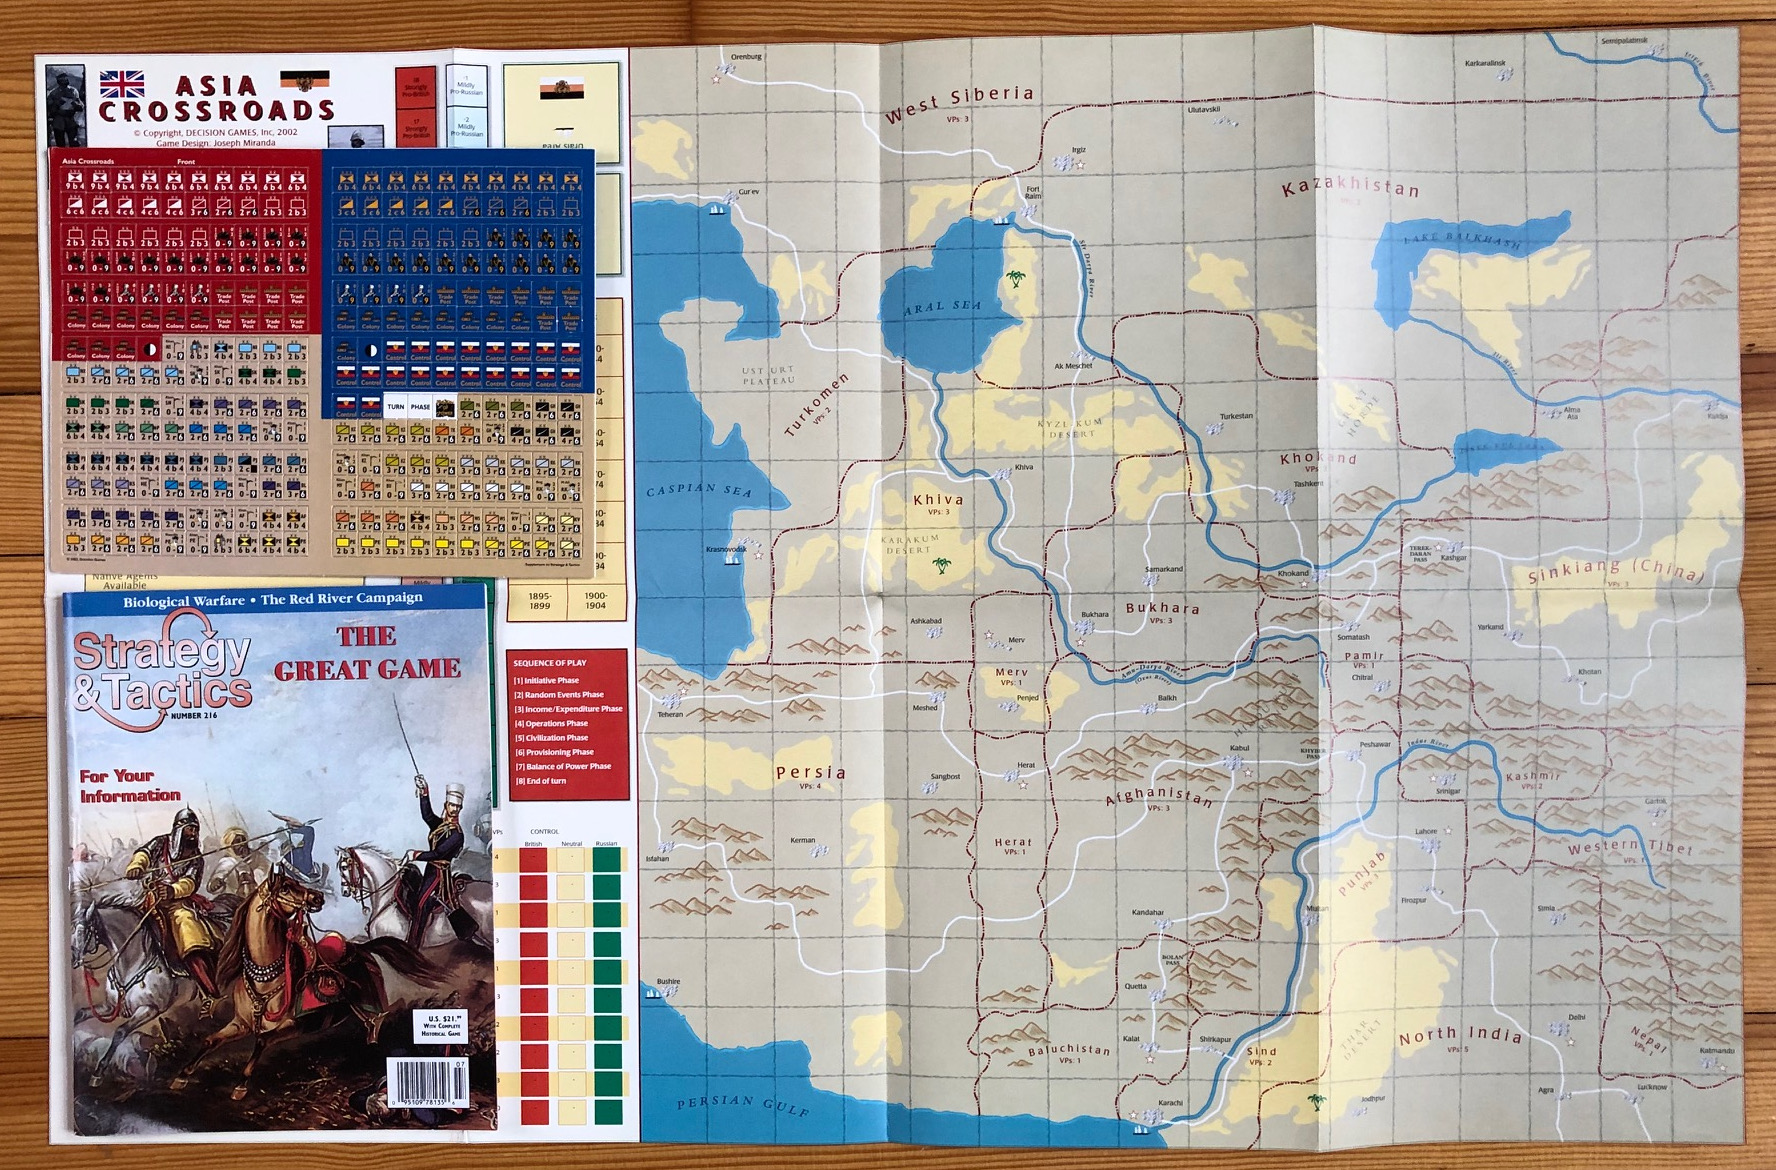 Strategy & Tactics - Game - 216 - The Great Game - Asia Crossroads